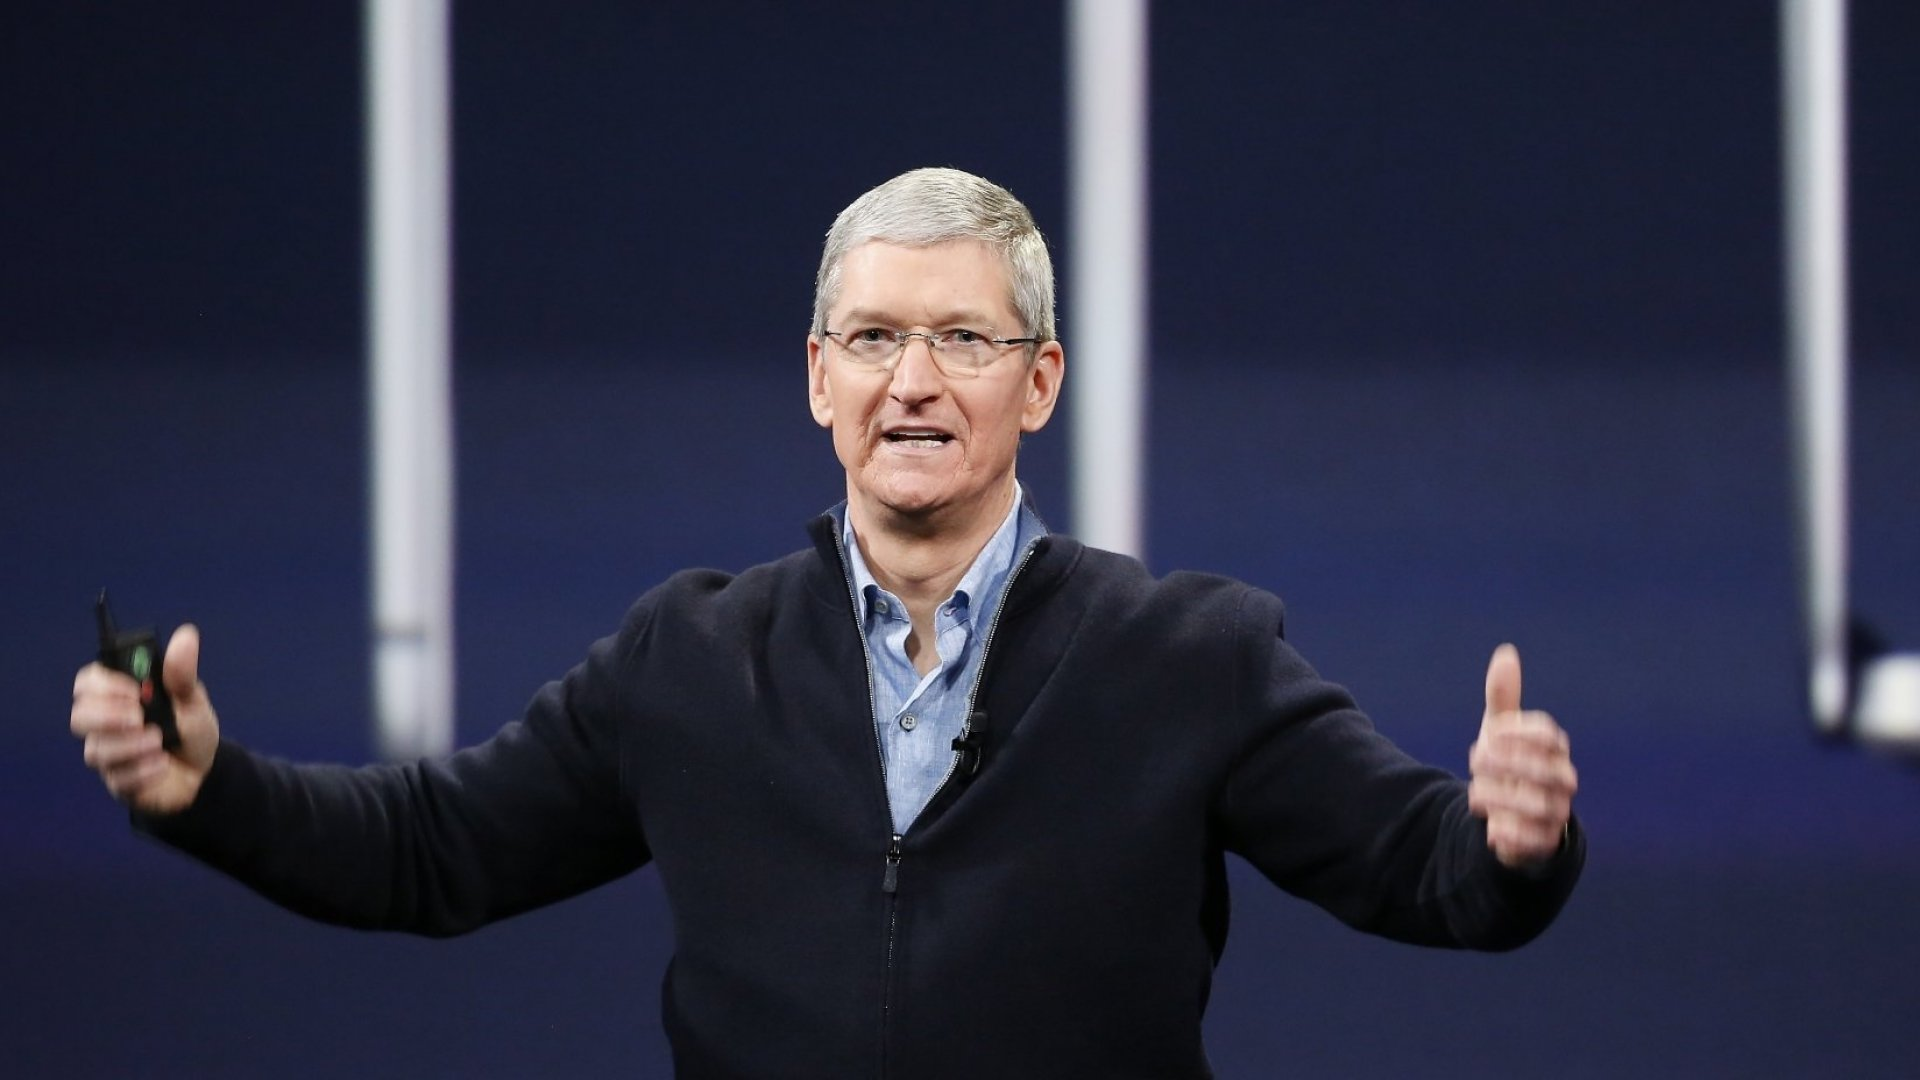 Tim Cook Wasn't the Highest Paid Apple Executive Last Year